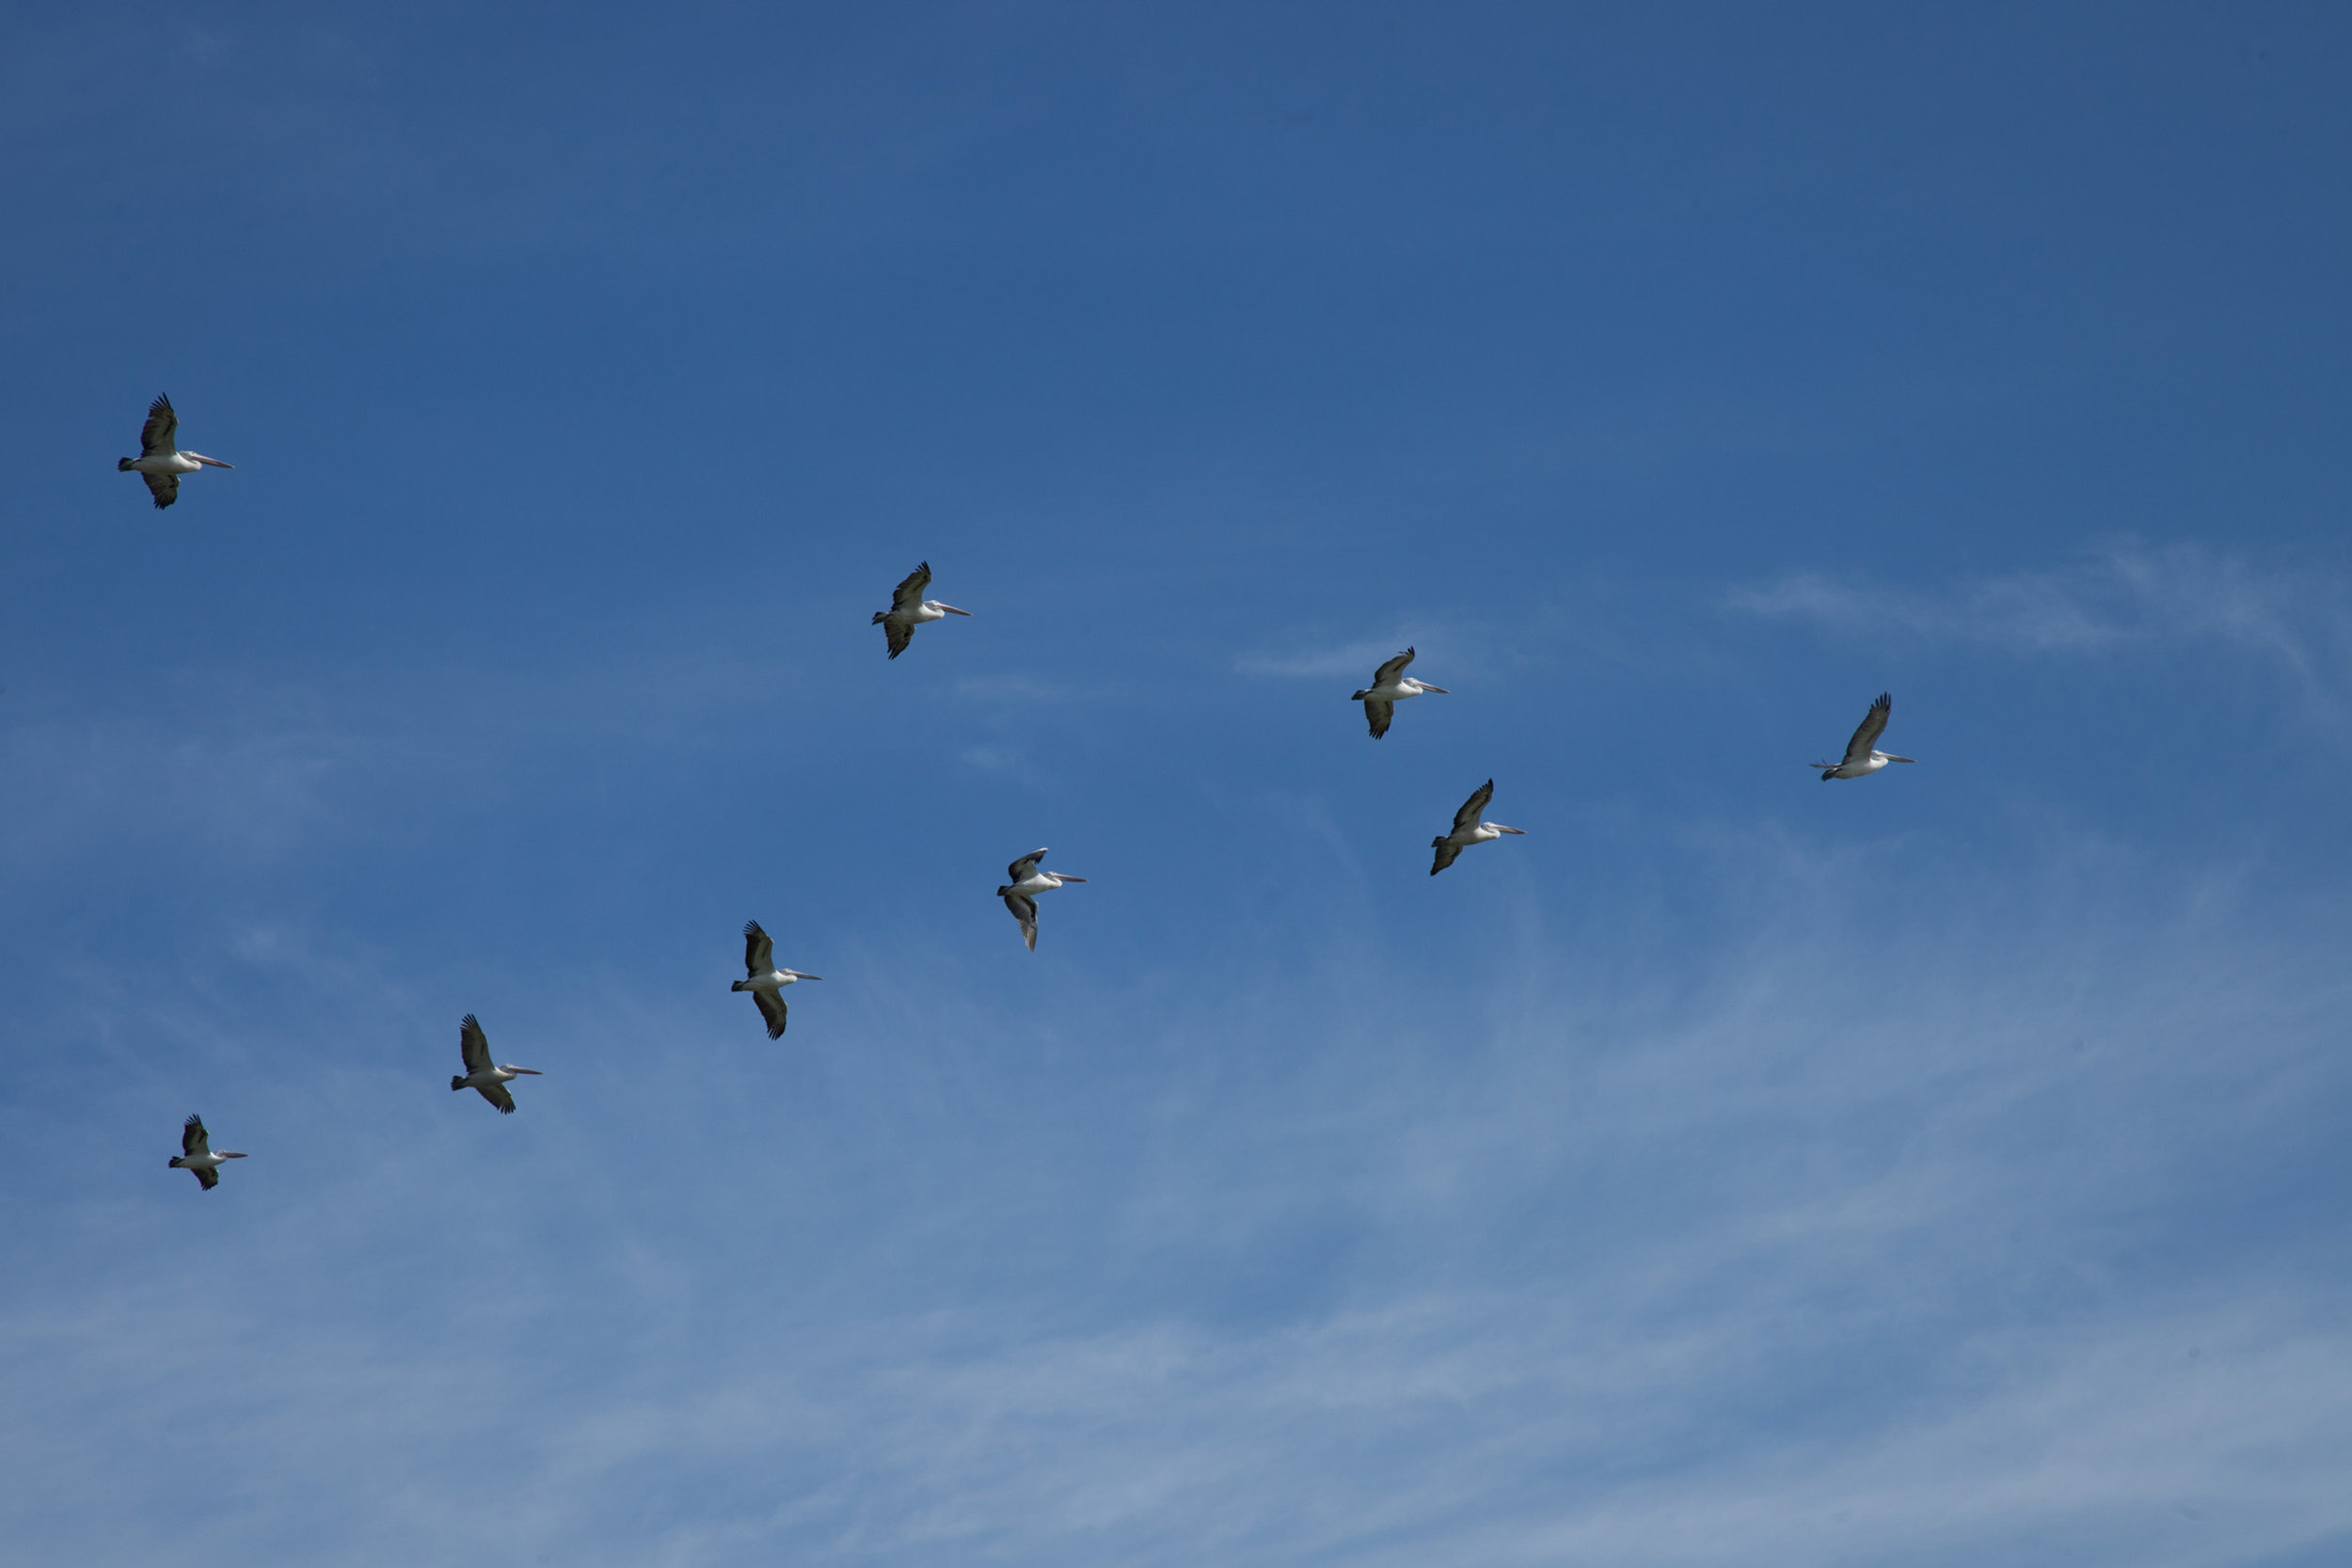 Plate 22: Some of the many pelicans flying over the area.